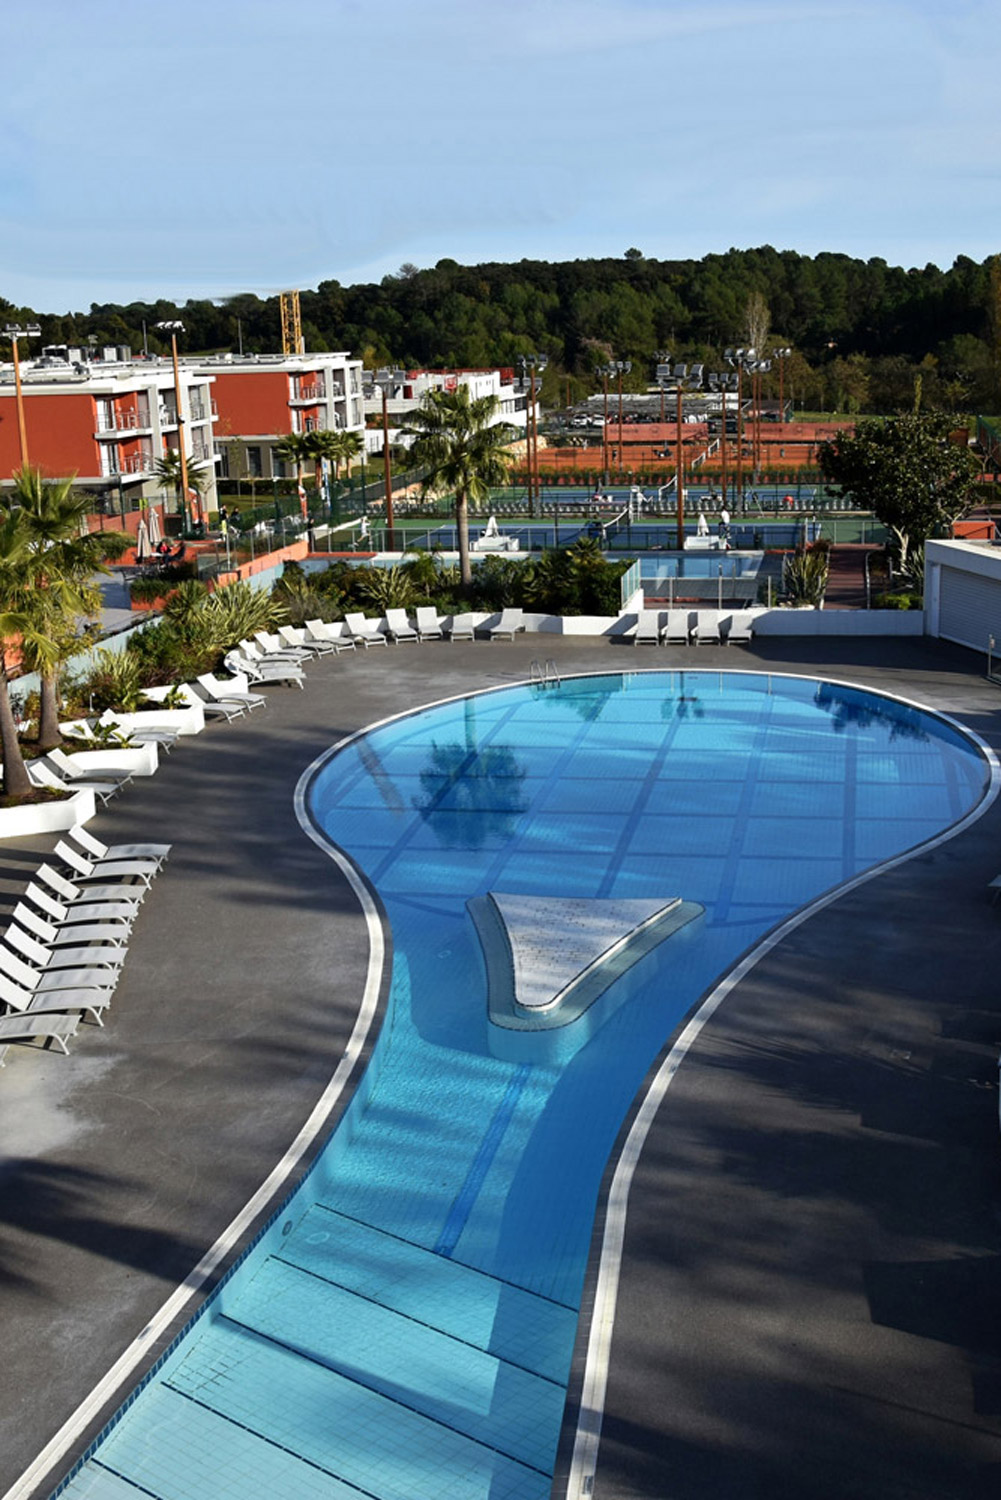 valbonne-city-guide-mouratoglou-resort-piscine-tennis